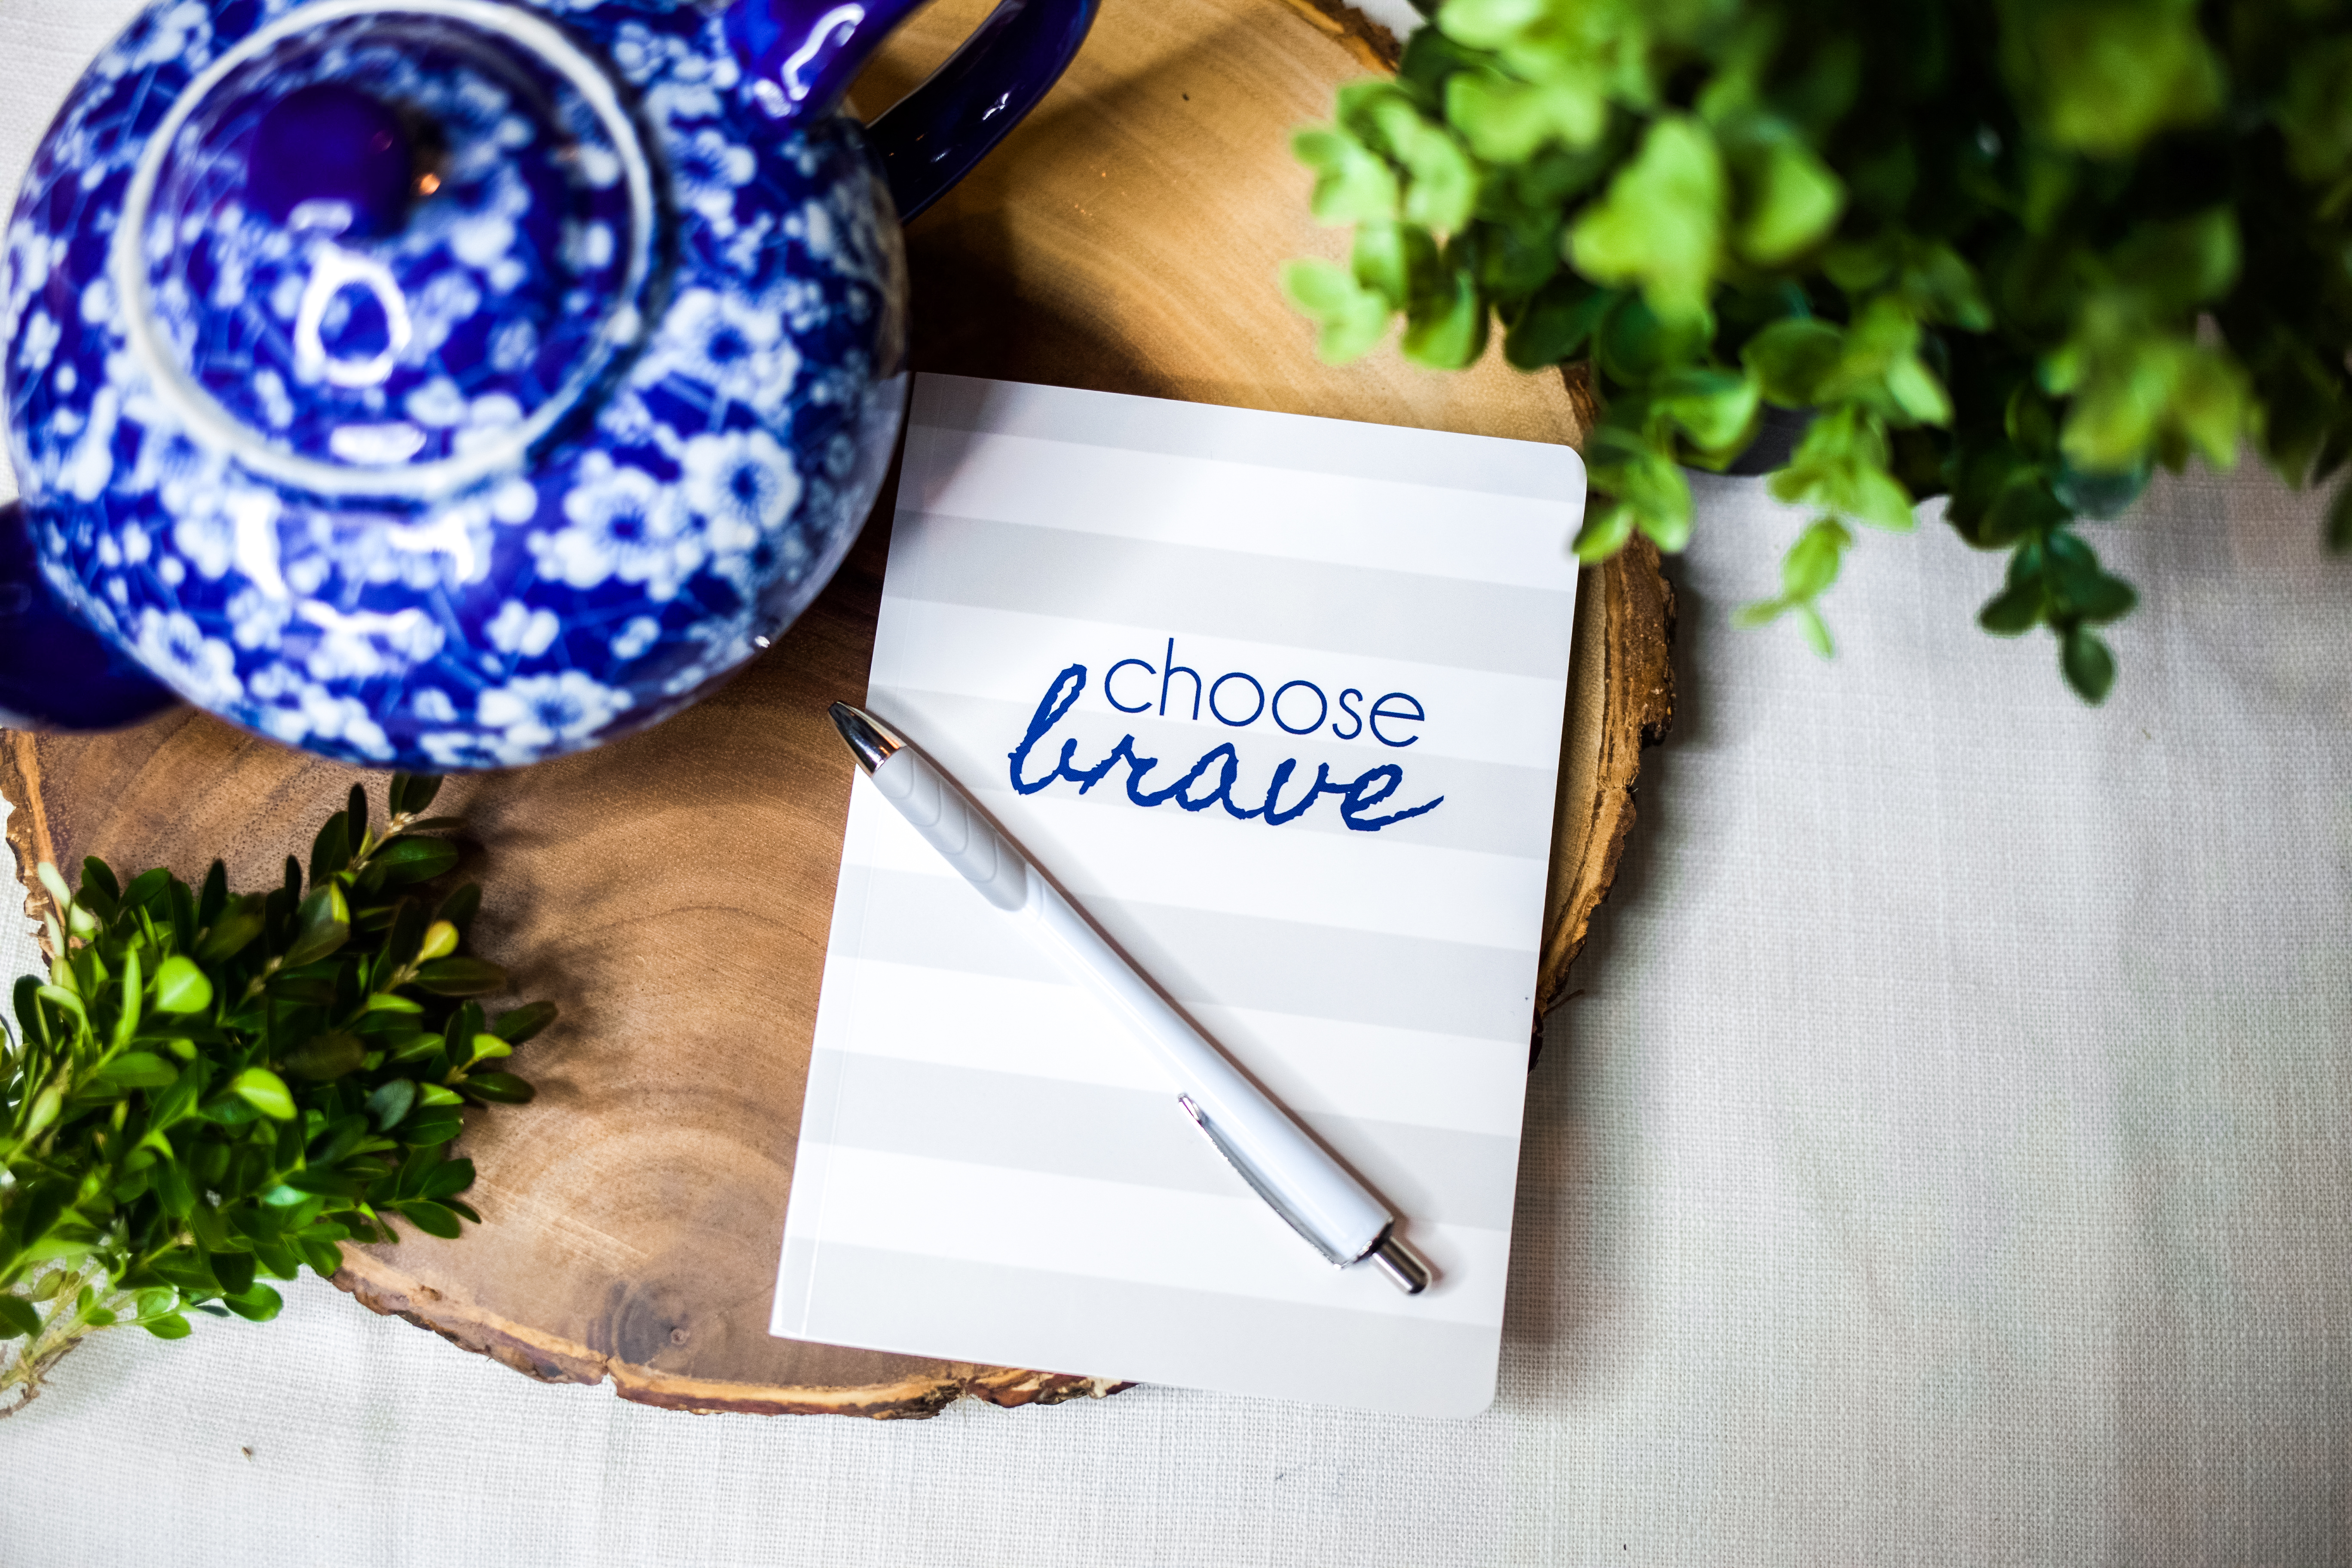 CHOOSE BRAVE Notebook | BeckyLMcCoy.com/shop